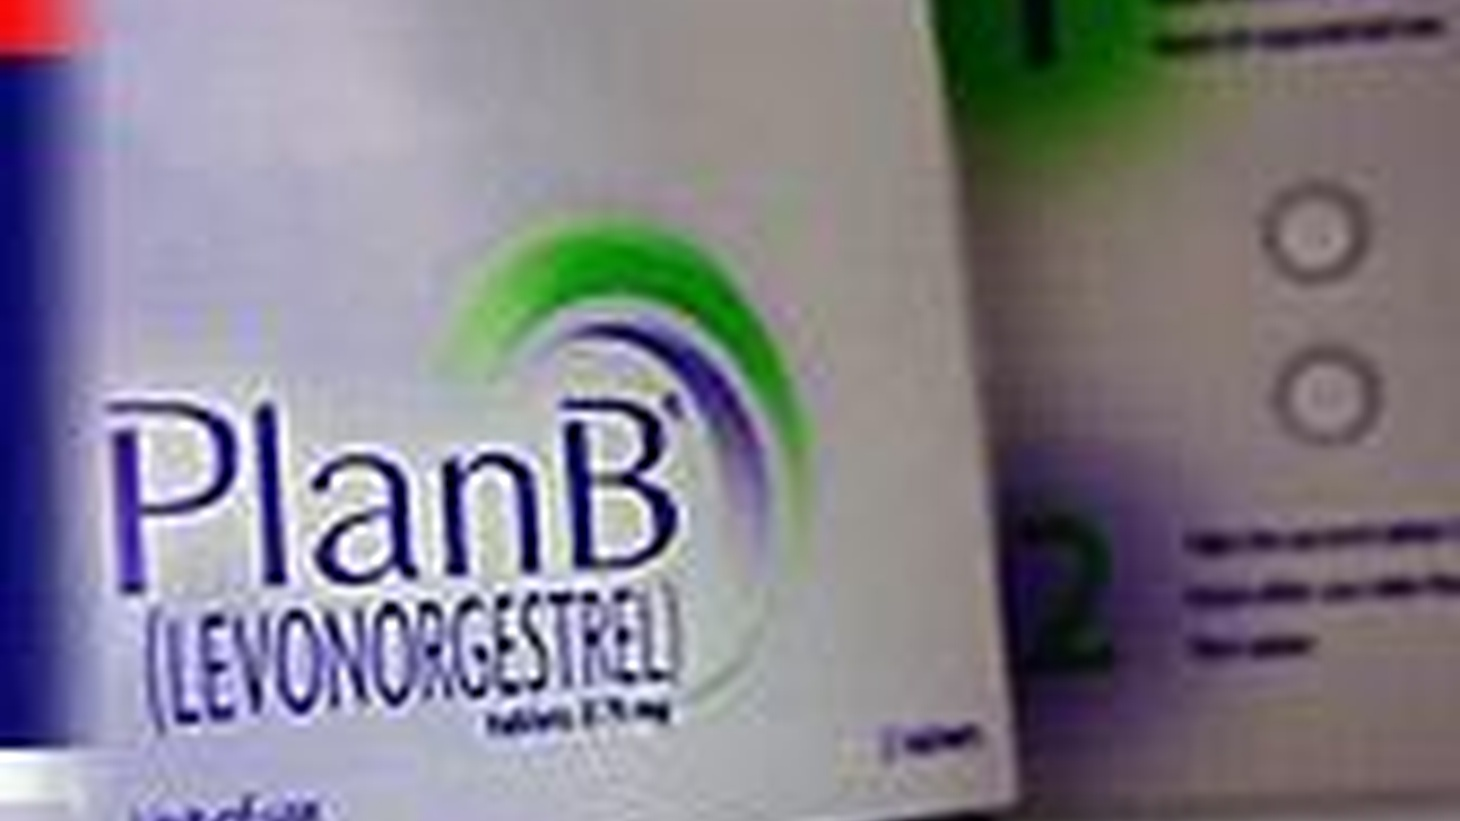 Does the approval of Plan B contraceptive pill signal a change at the Food and Drug Administration?